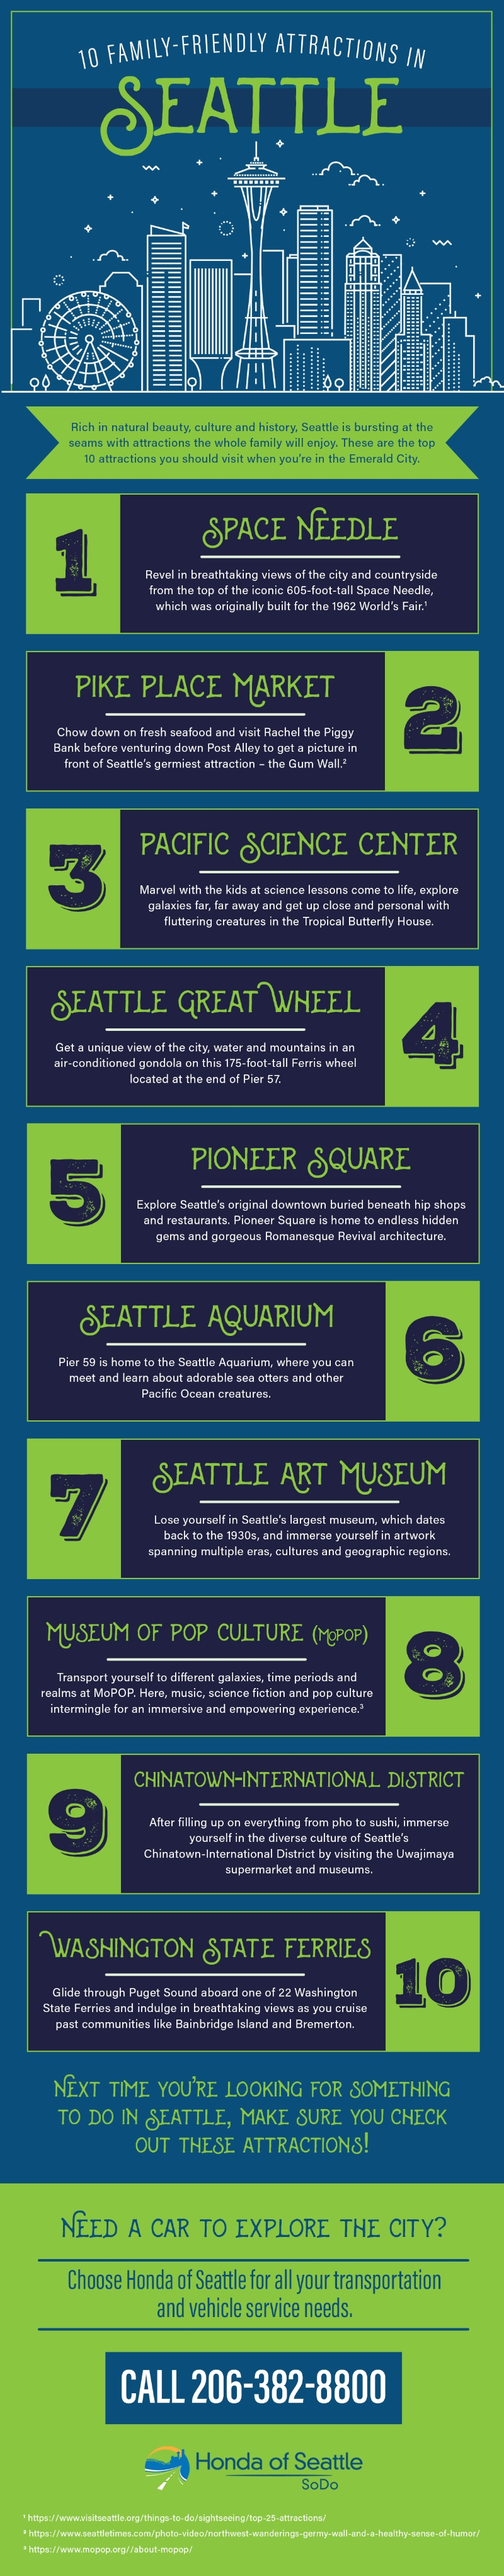 Top 9 attractions in seattle honda of seattle blog for Honda of seattle